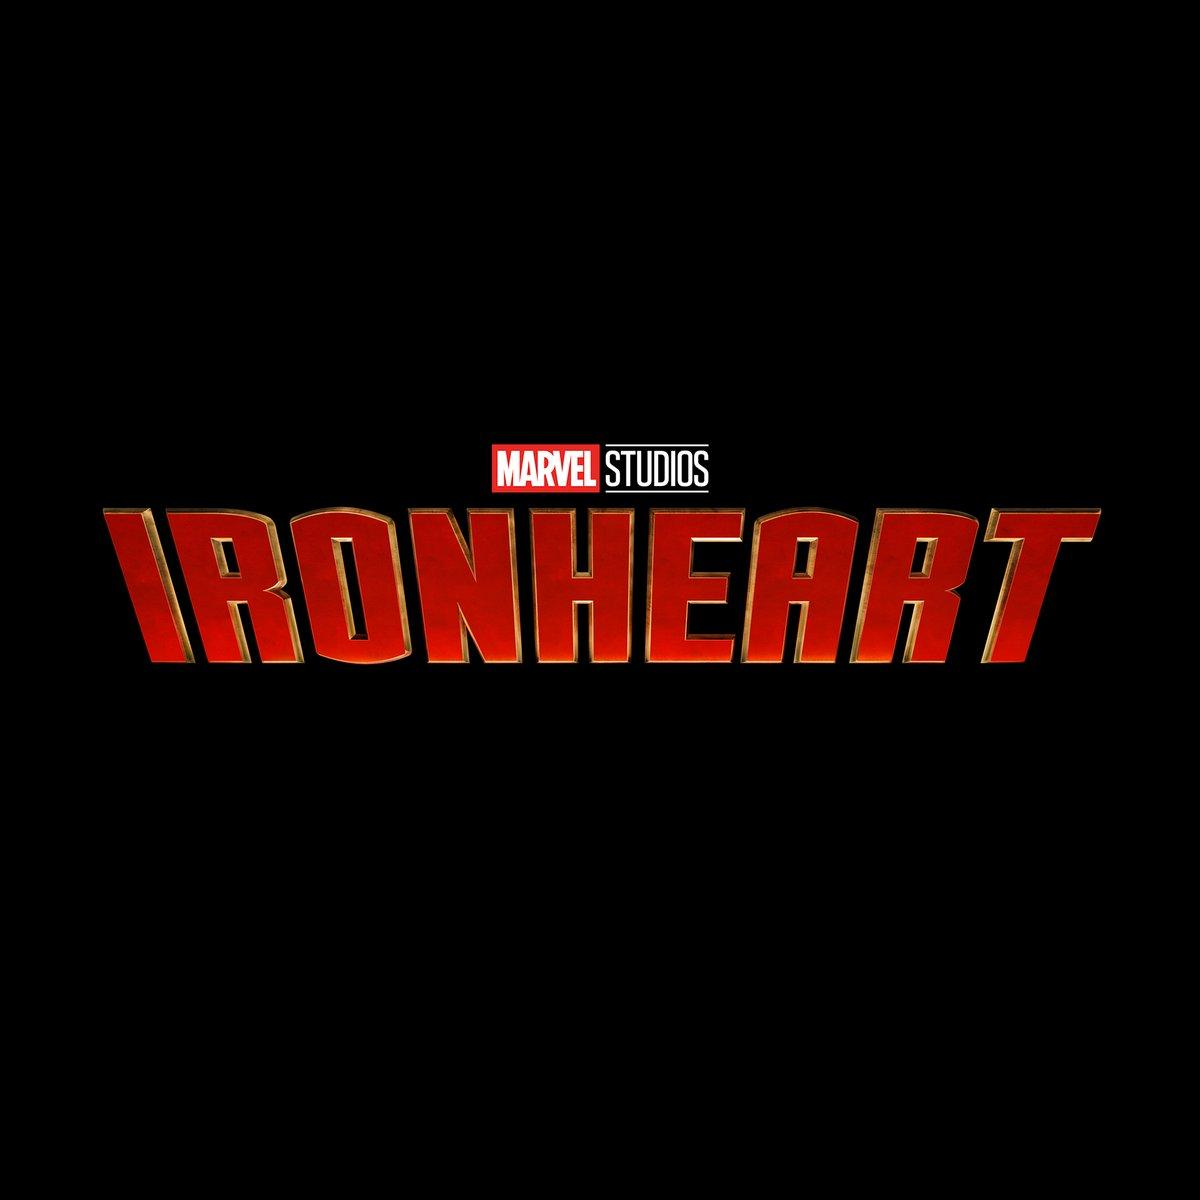 "Marvel Studios on Twitter: ""Coming soon to #DisneyPlus, Dominique Thorne is  genius inventor Riri Williams in Ironheart, an Original Series about the  creator of the most advanced suit of armor since Iron"